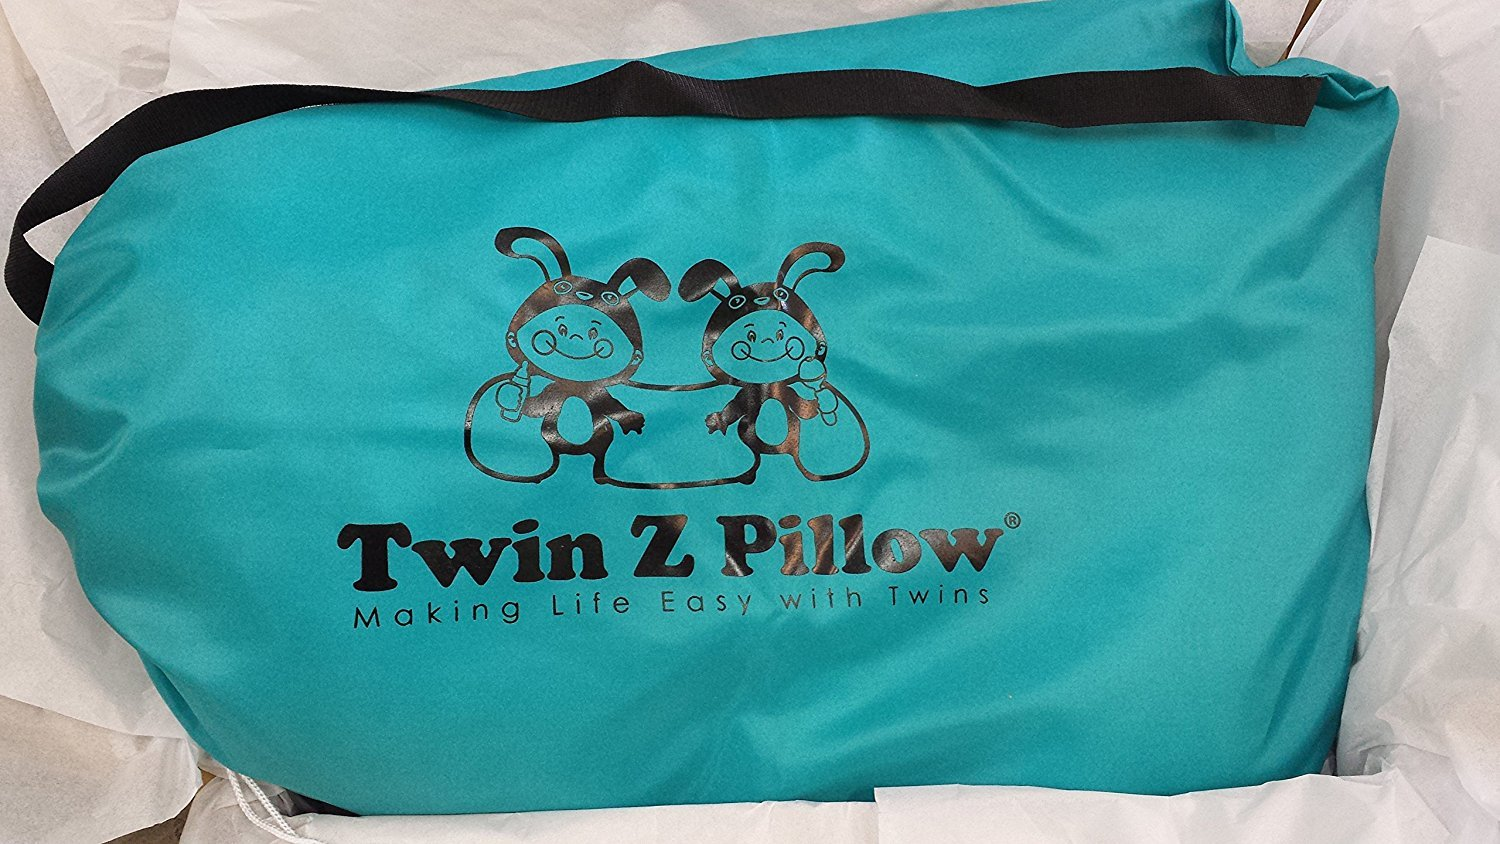 Twin Z Pillow + 1 Grey cuddle cover + FREE Travel Bag! by Twin Z PIllow